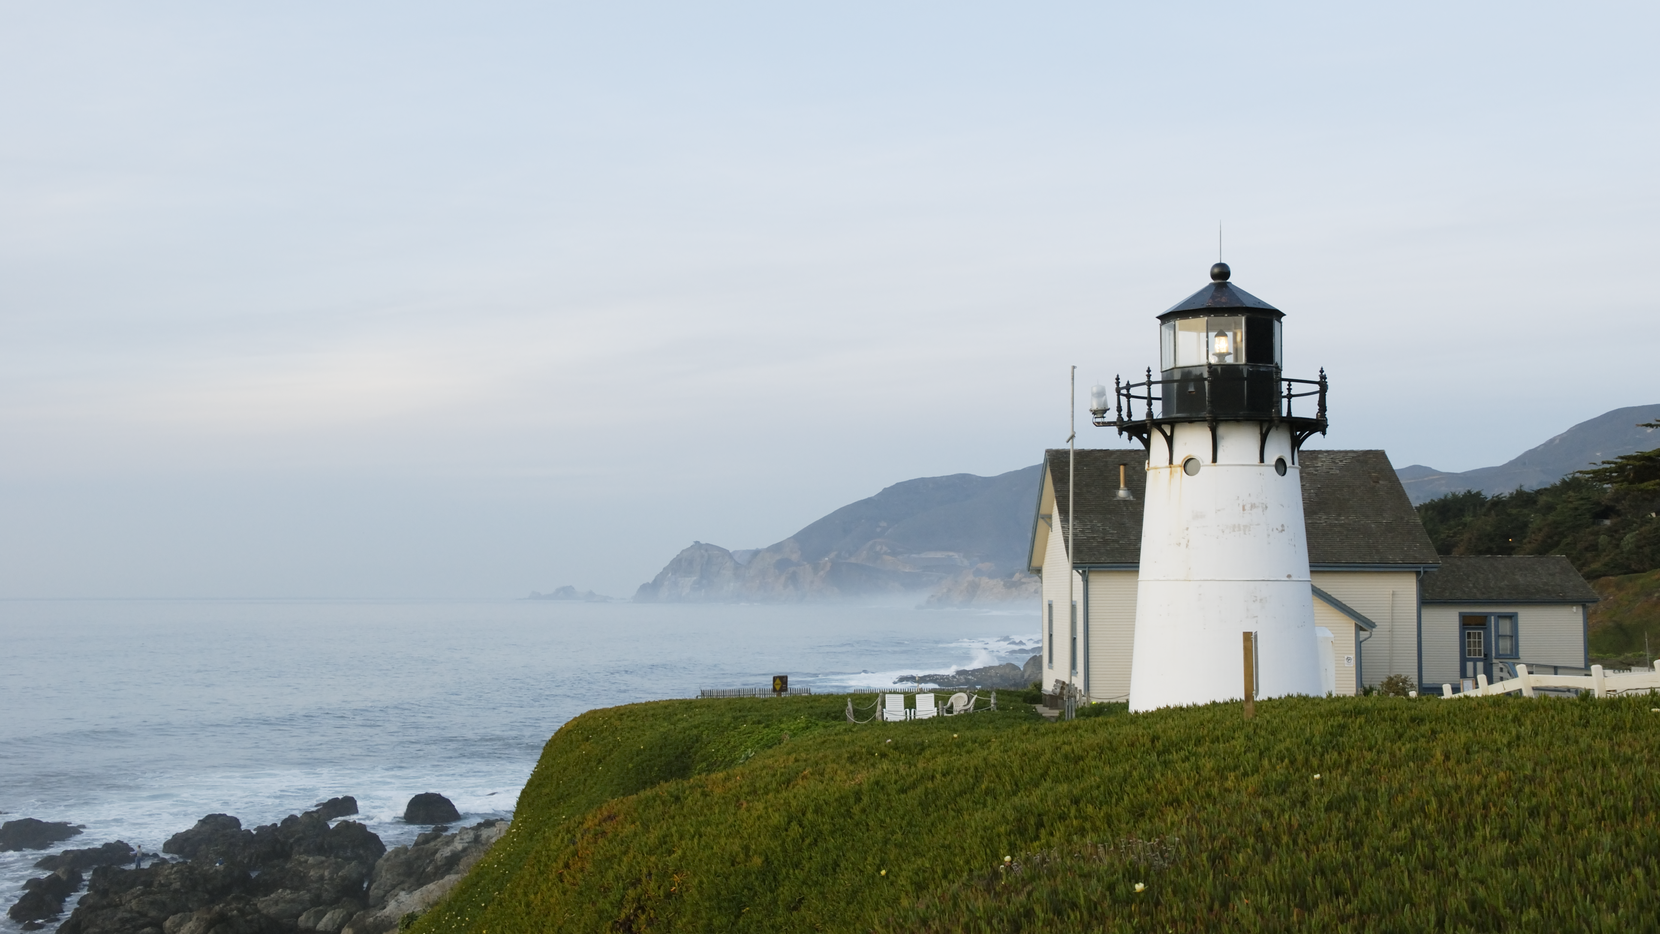 The Point Montara Lighthouse near San Francisco is the only beacon to have operated on America's Atlantic and Pacific coasts.